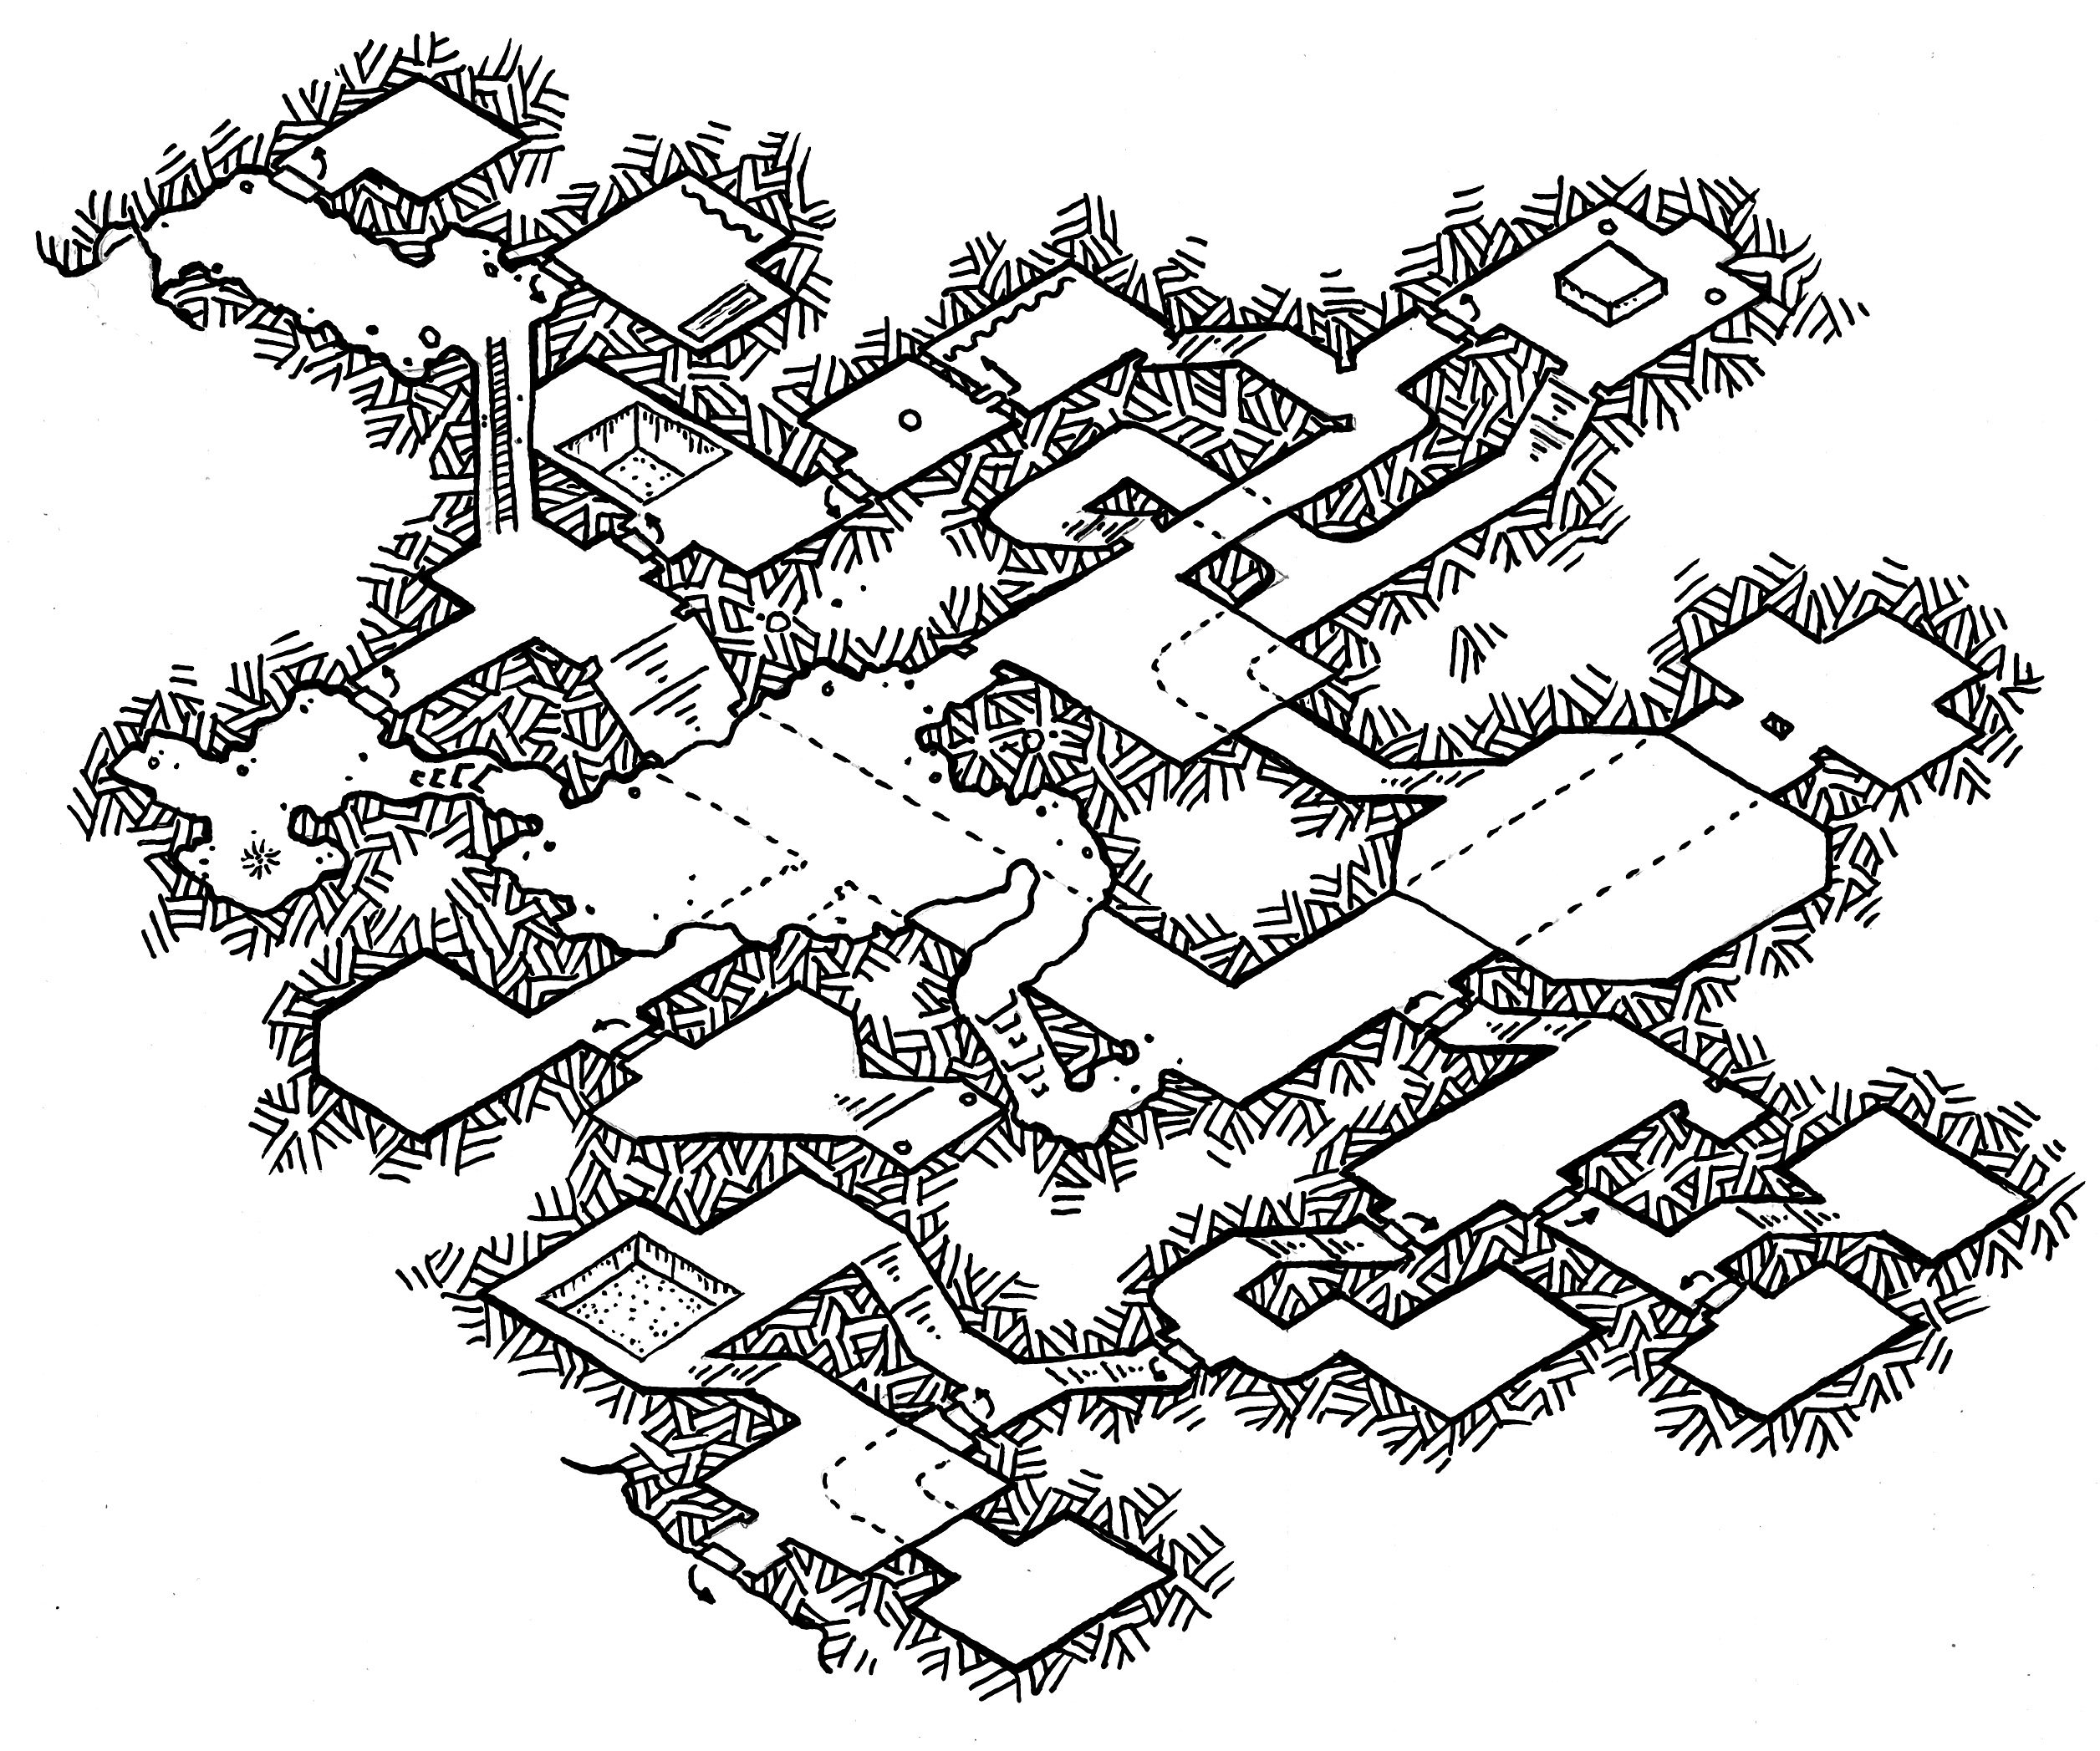 Friday Map] Isometric Dungeon Experiment #4 | Dyson's Dodecahedron